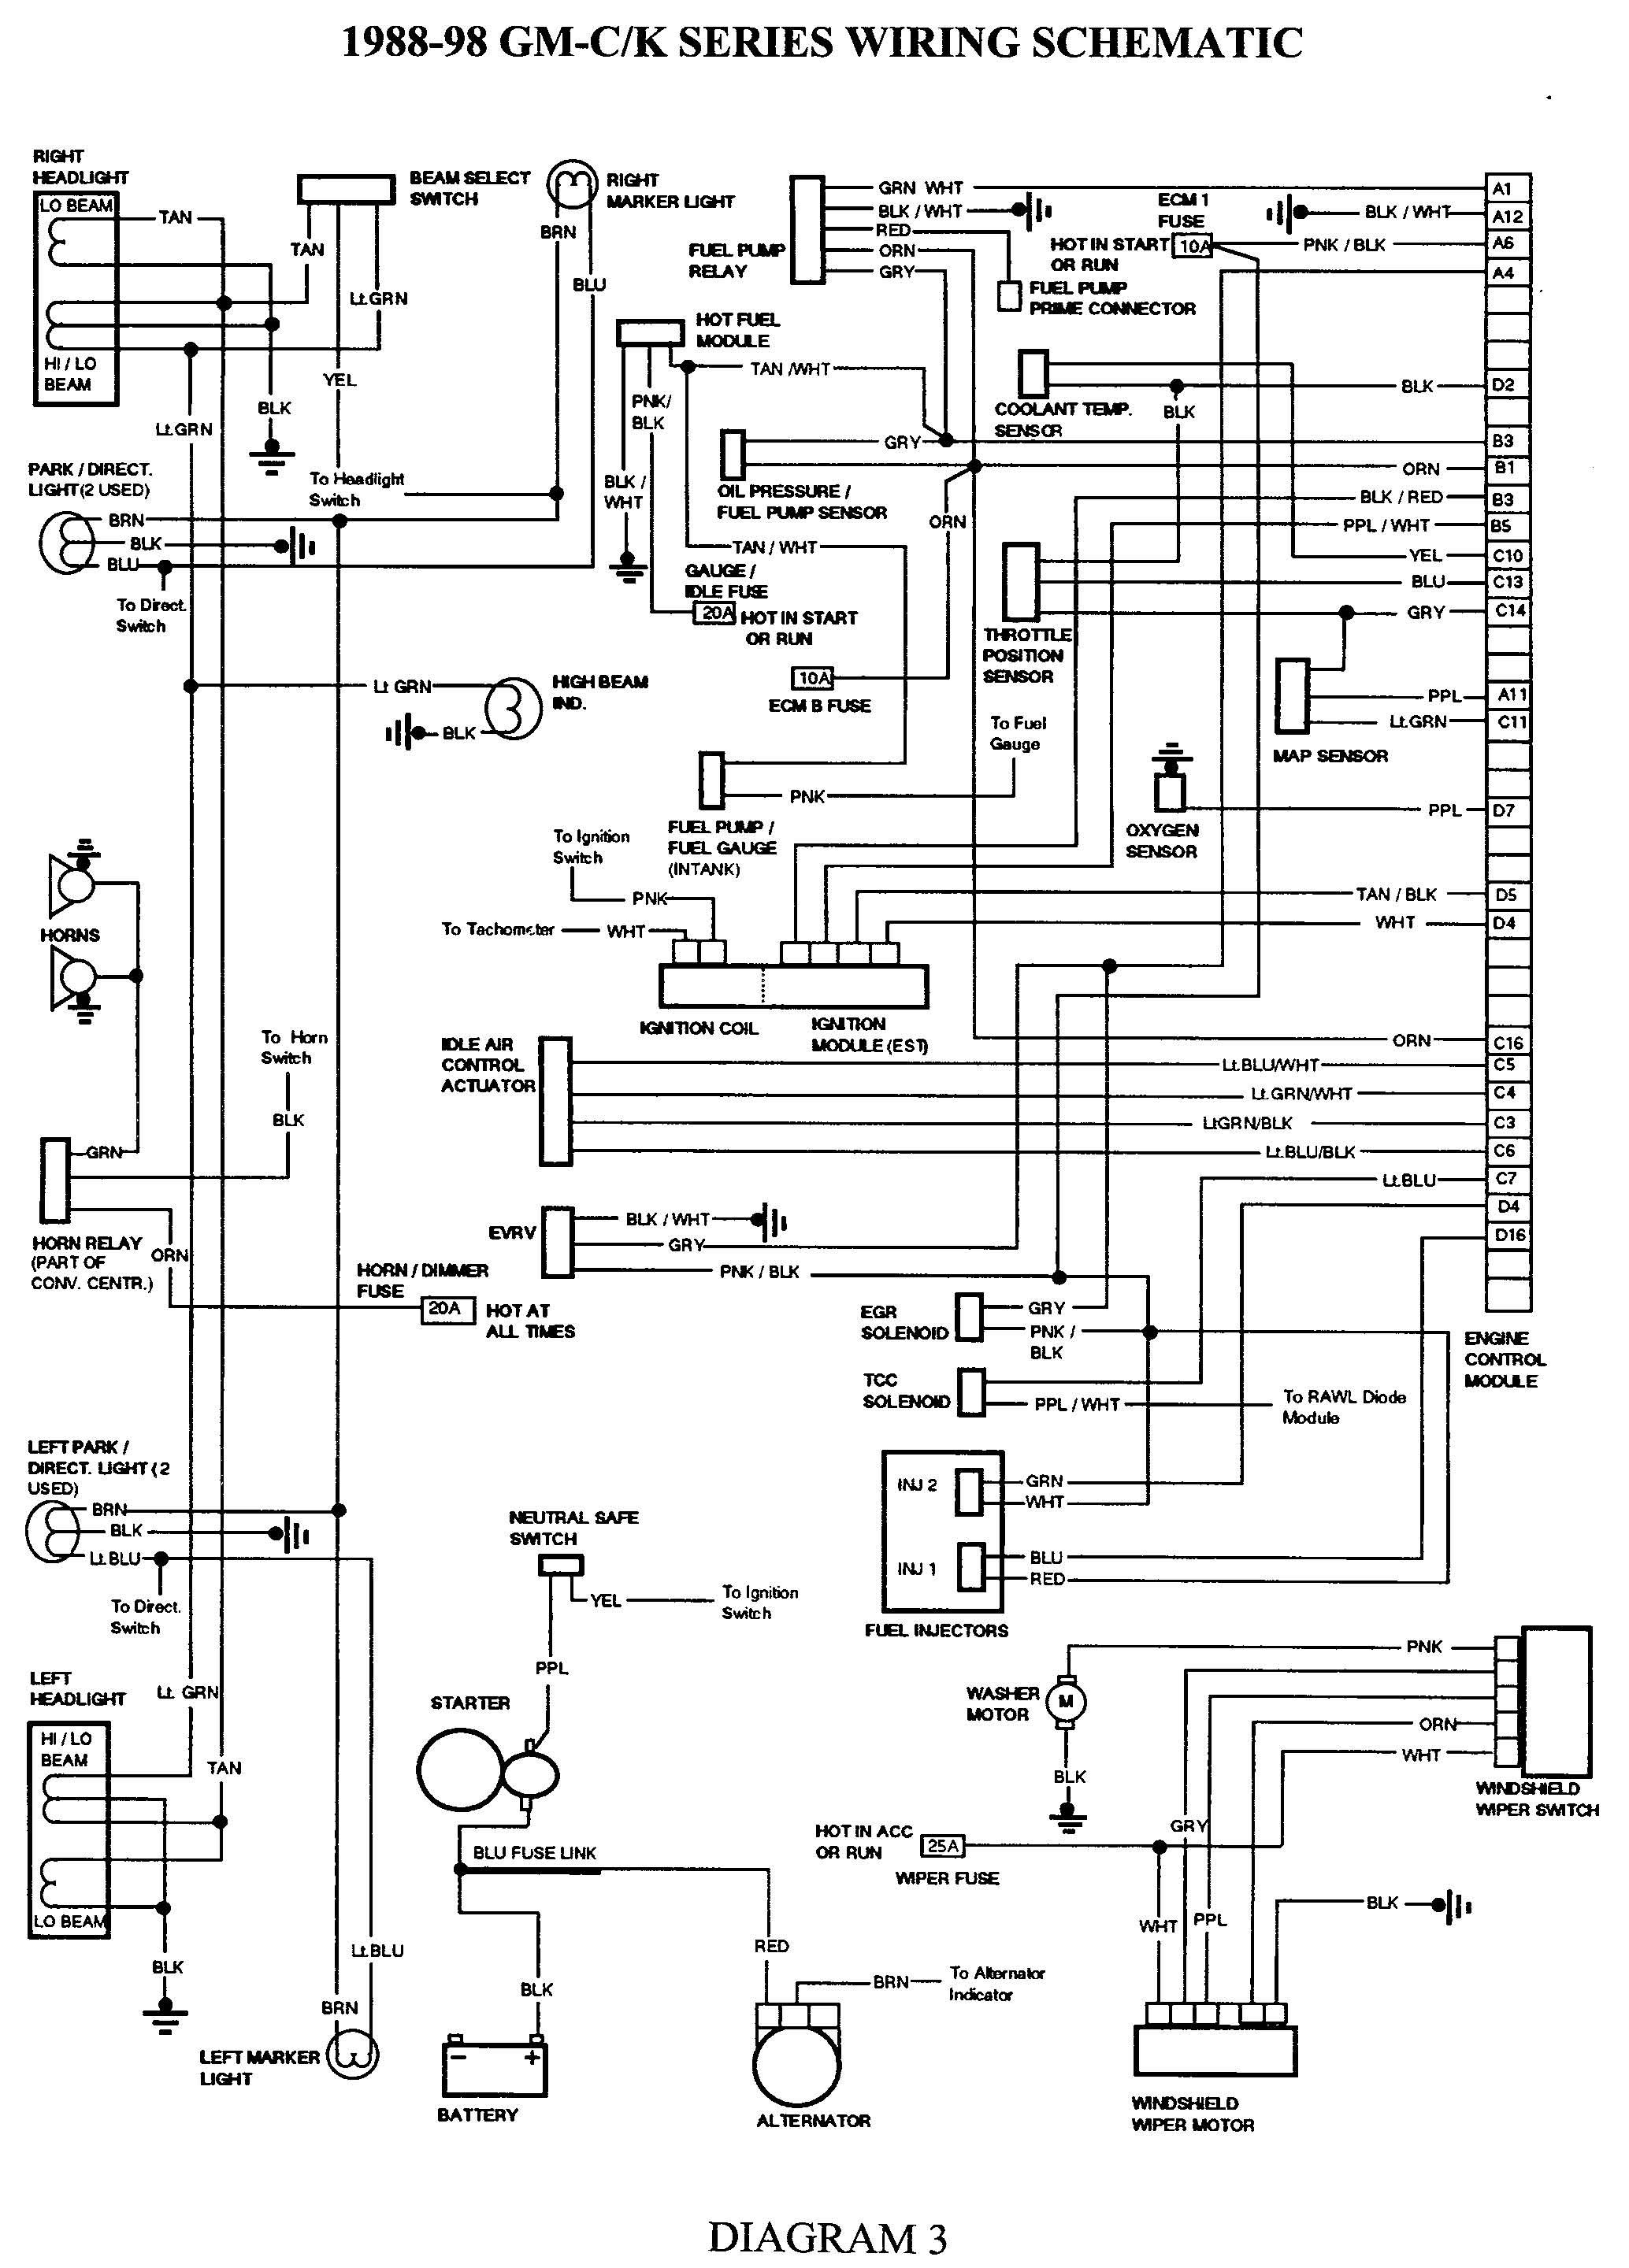 chevy 305 wiring diagram wiring diagram